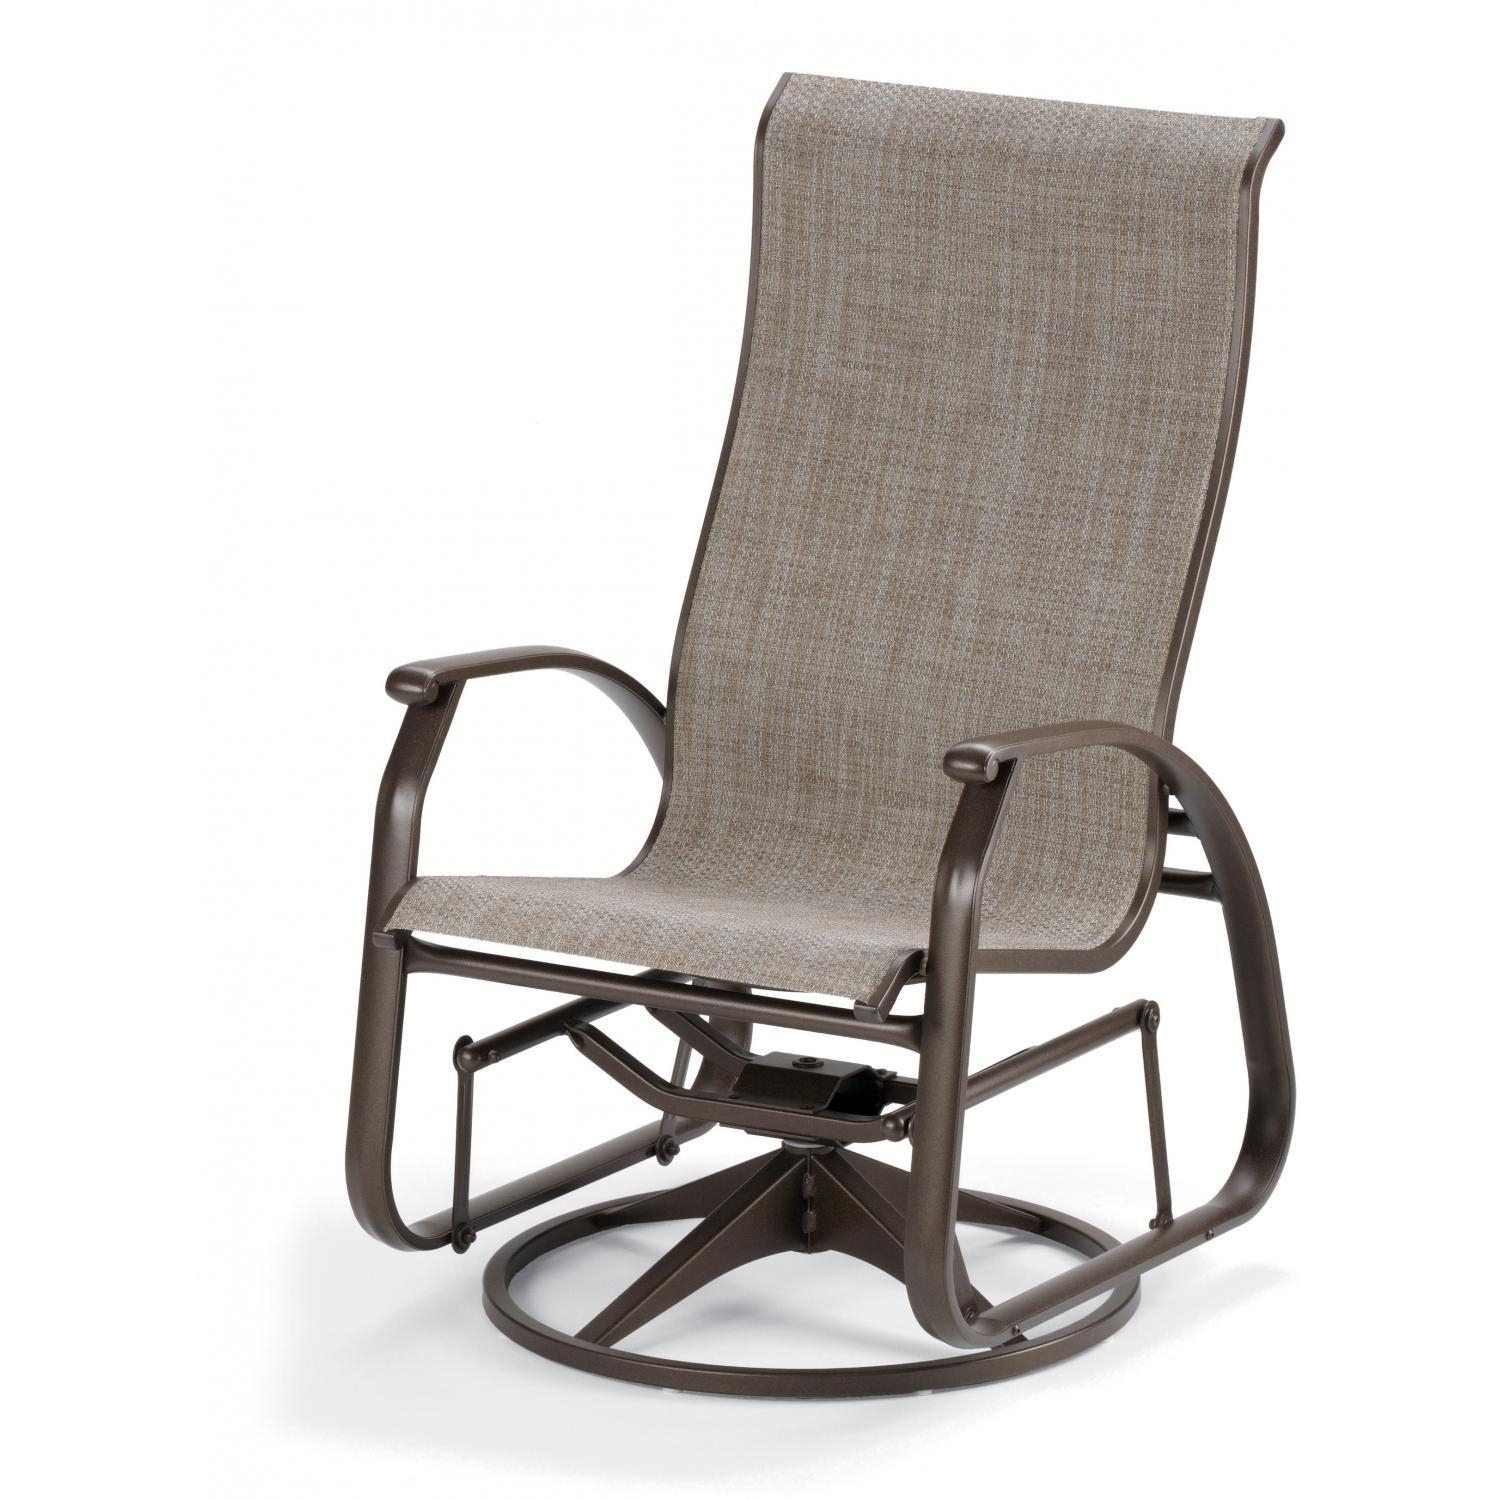 Inspiration about Telescope Casual Cape May Sling Patio Supreme Swivel Glider Dining Within Patio Sling Rocking Chairs (#5 of 15)